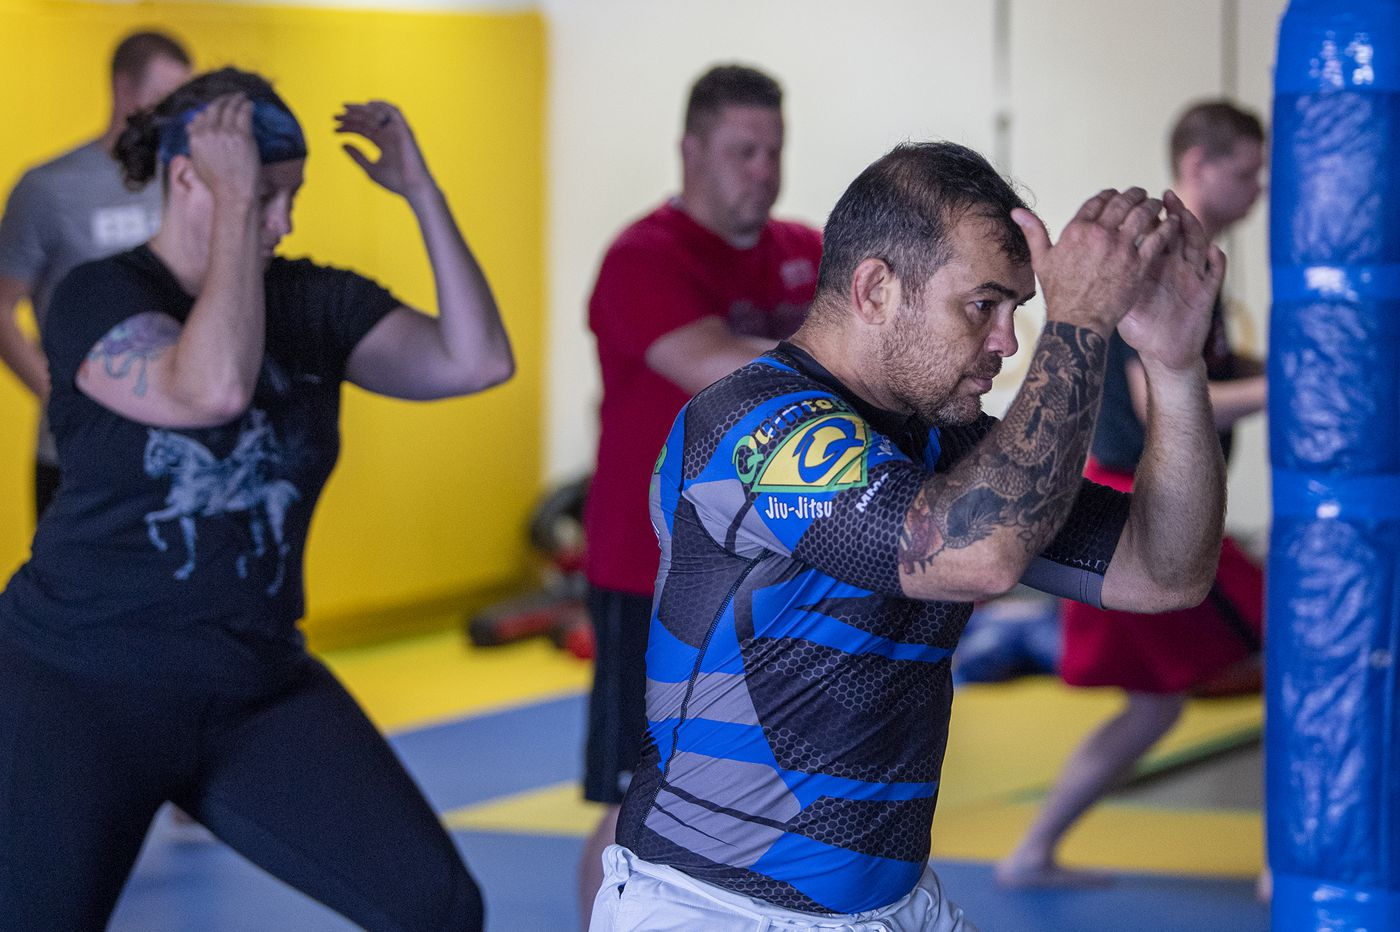 This Brazilian immigrant gives cops free lessons in jiujitsu and humility at his Delco studio | We The People